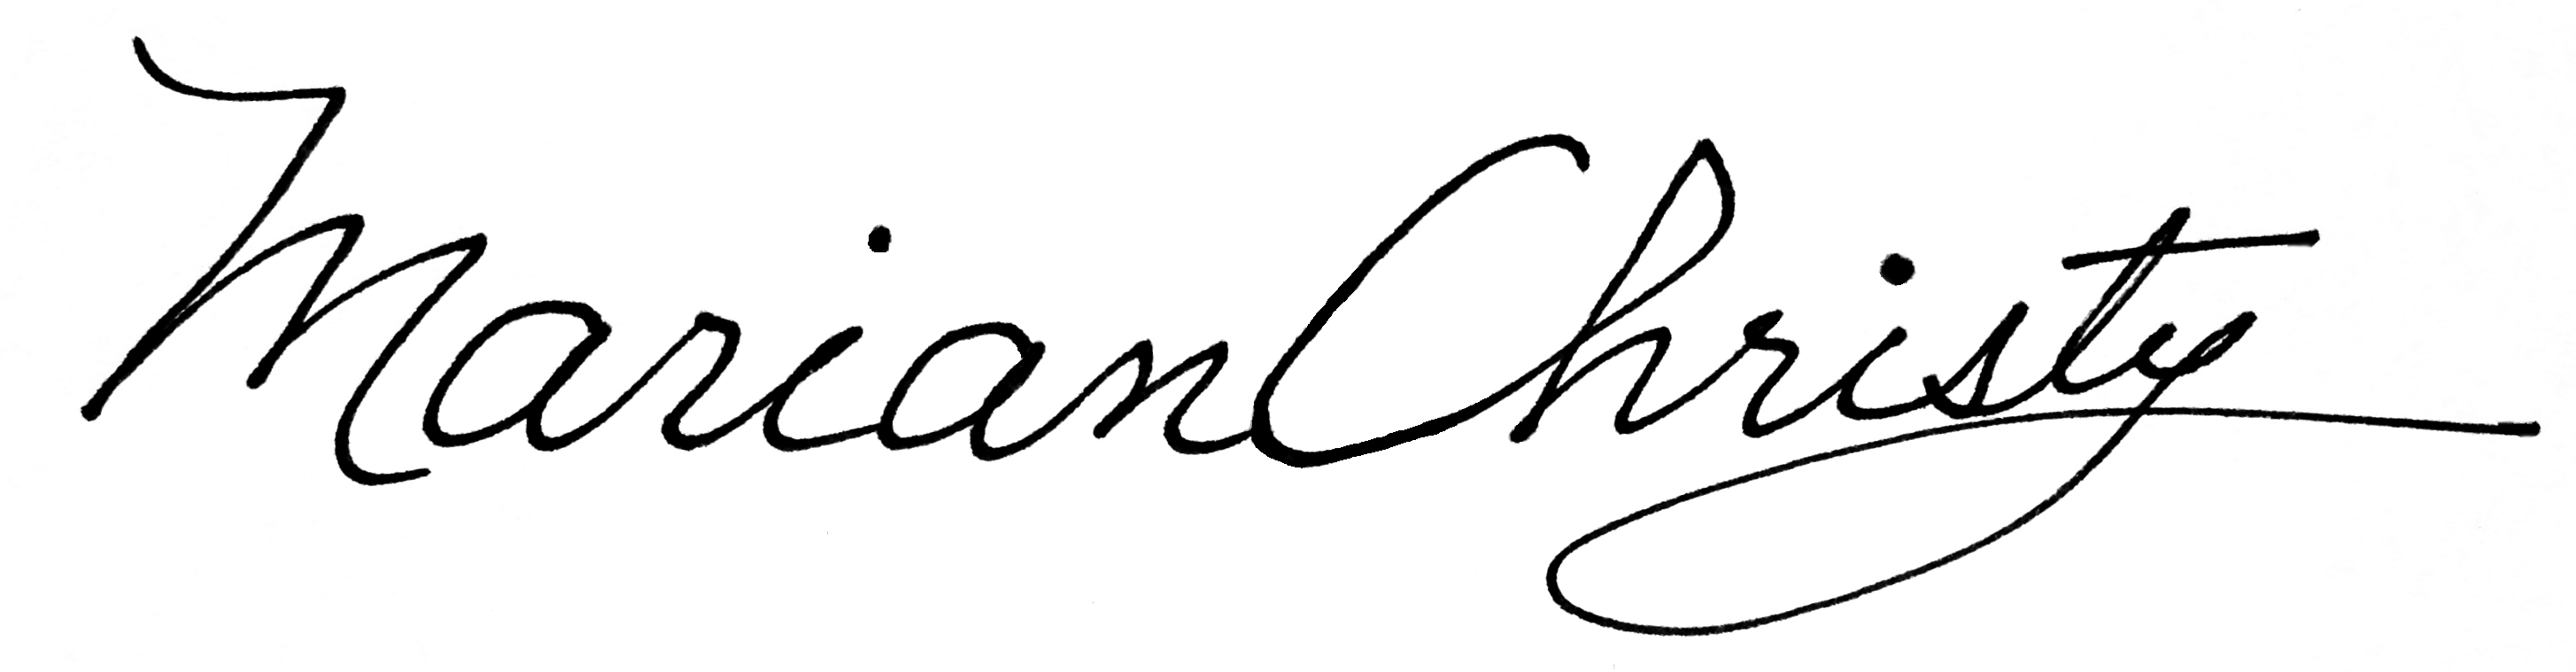 Marian Christy's Signature